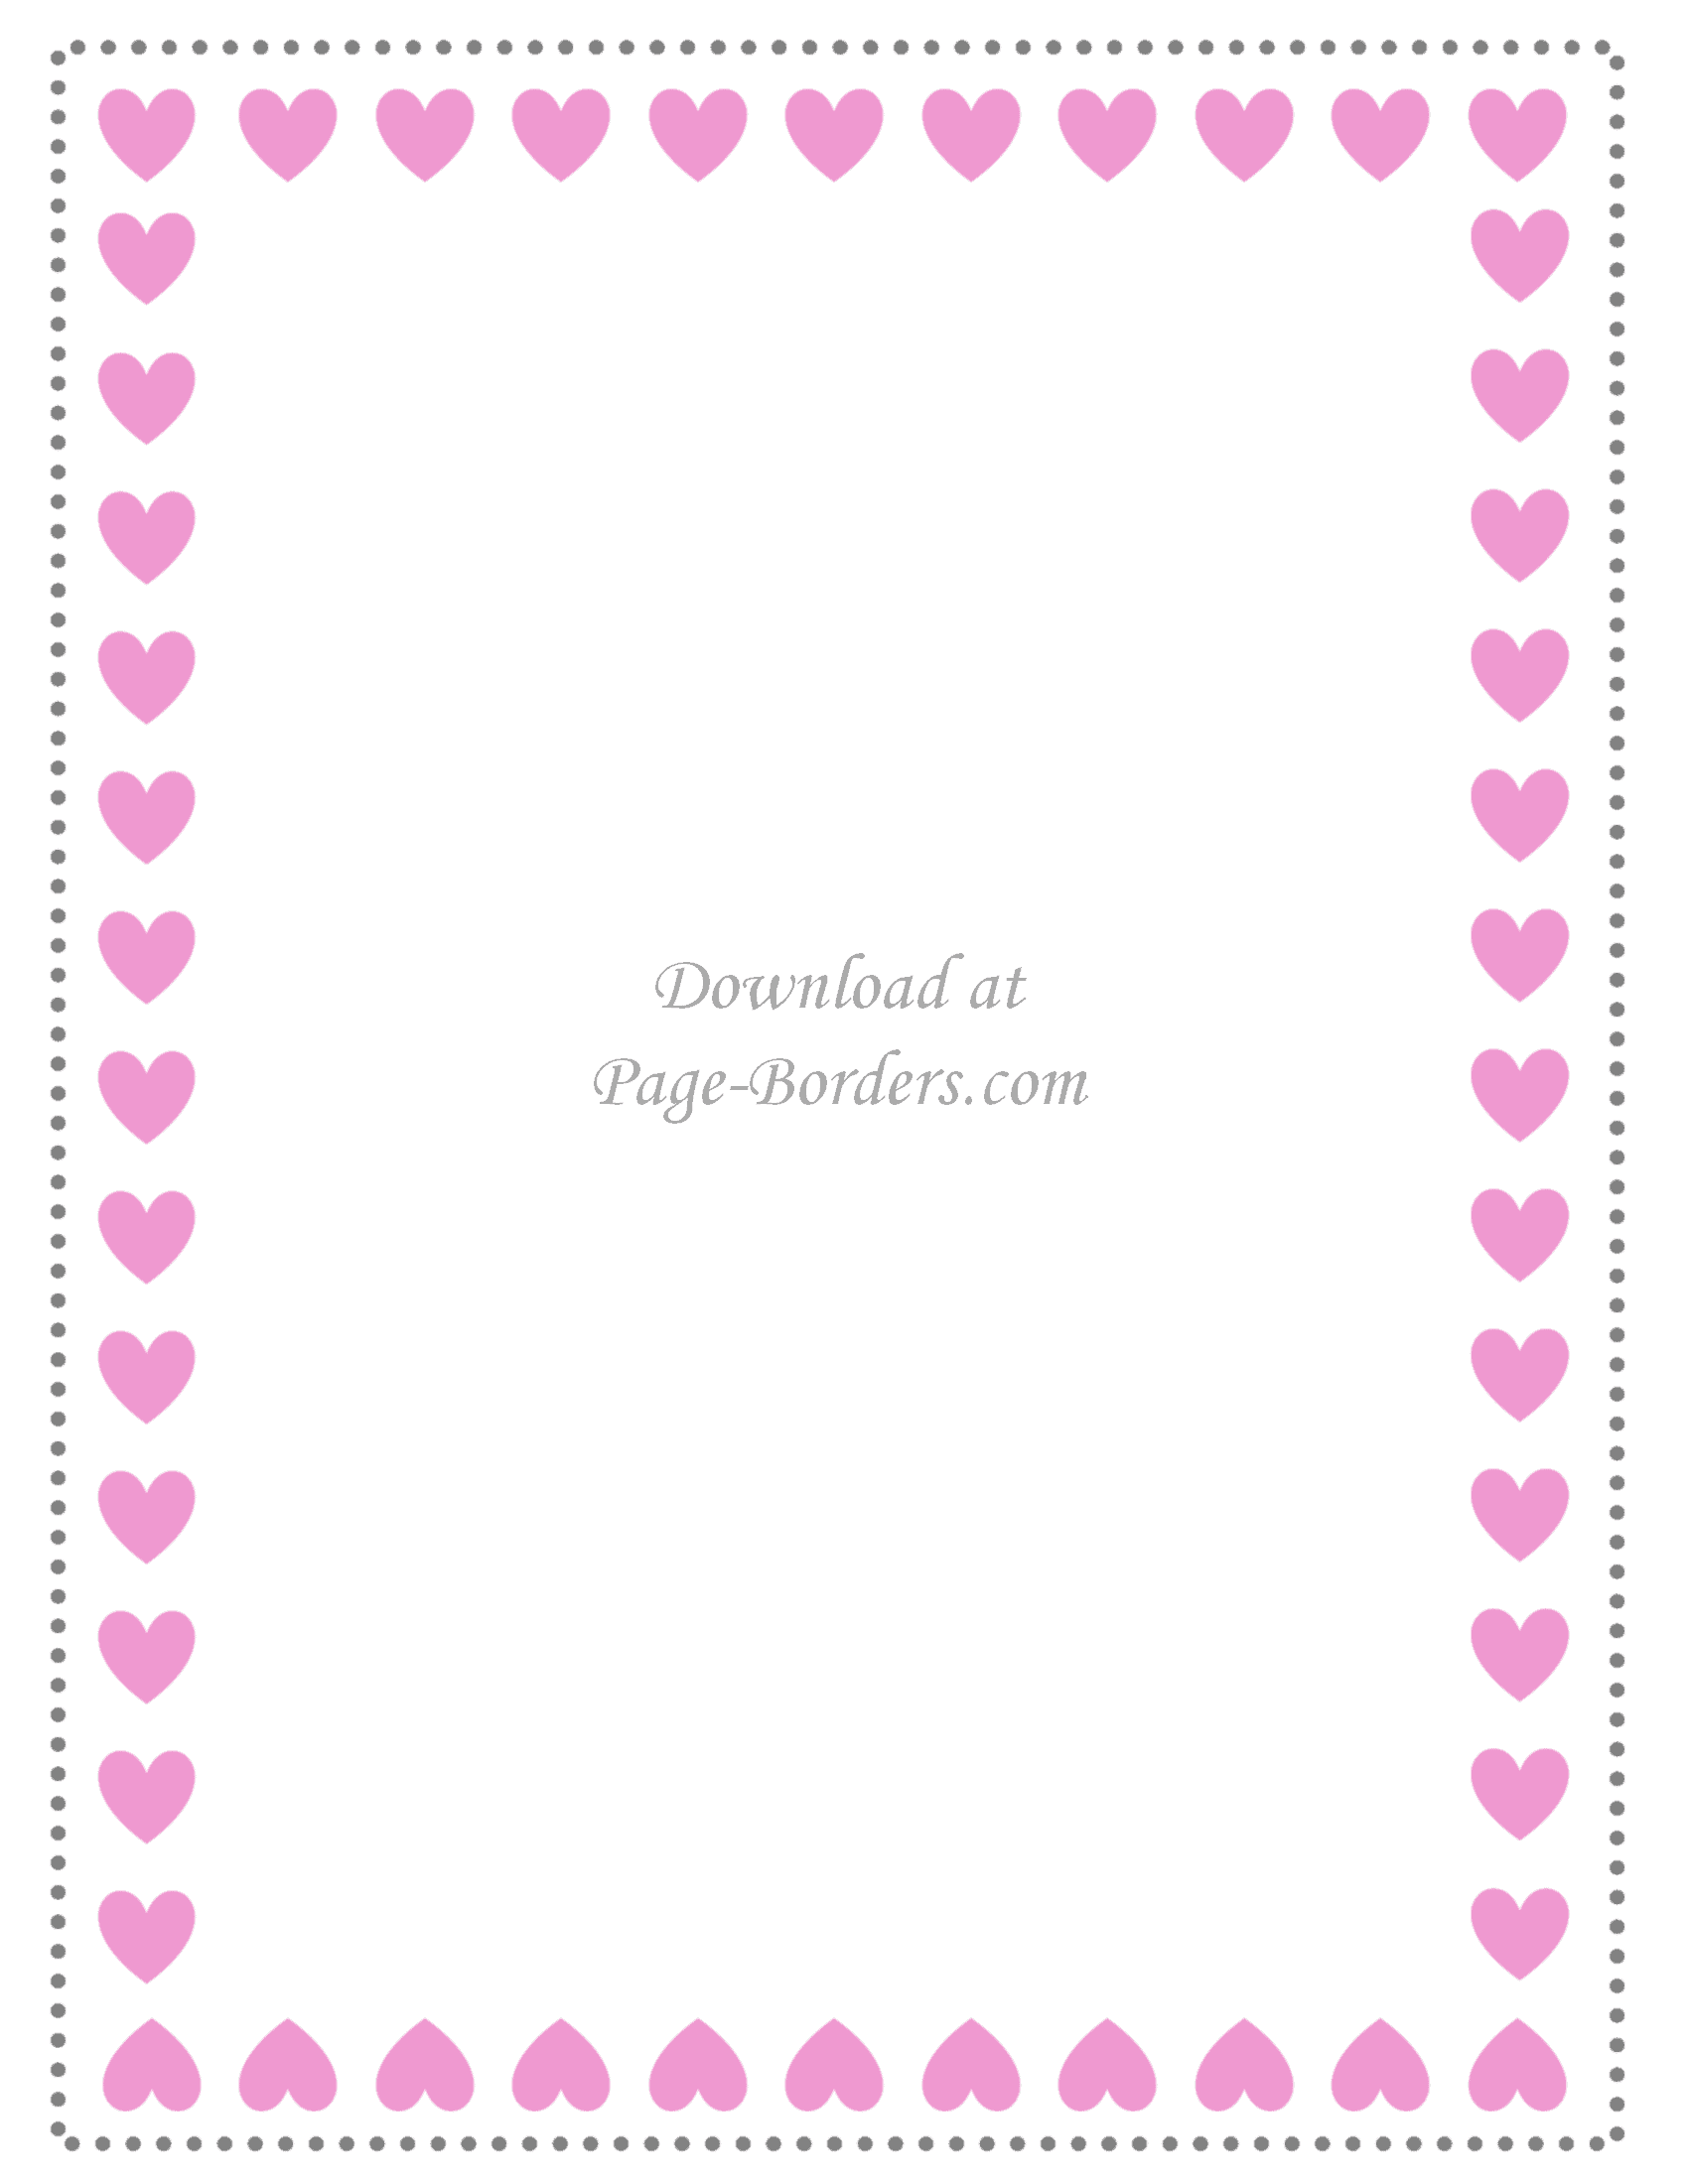 free printable heart border customize online or download as is rh page borders com heart borders and frames heart border free